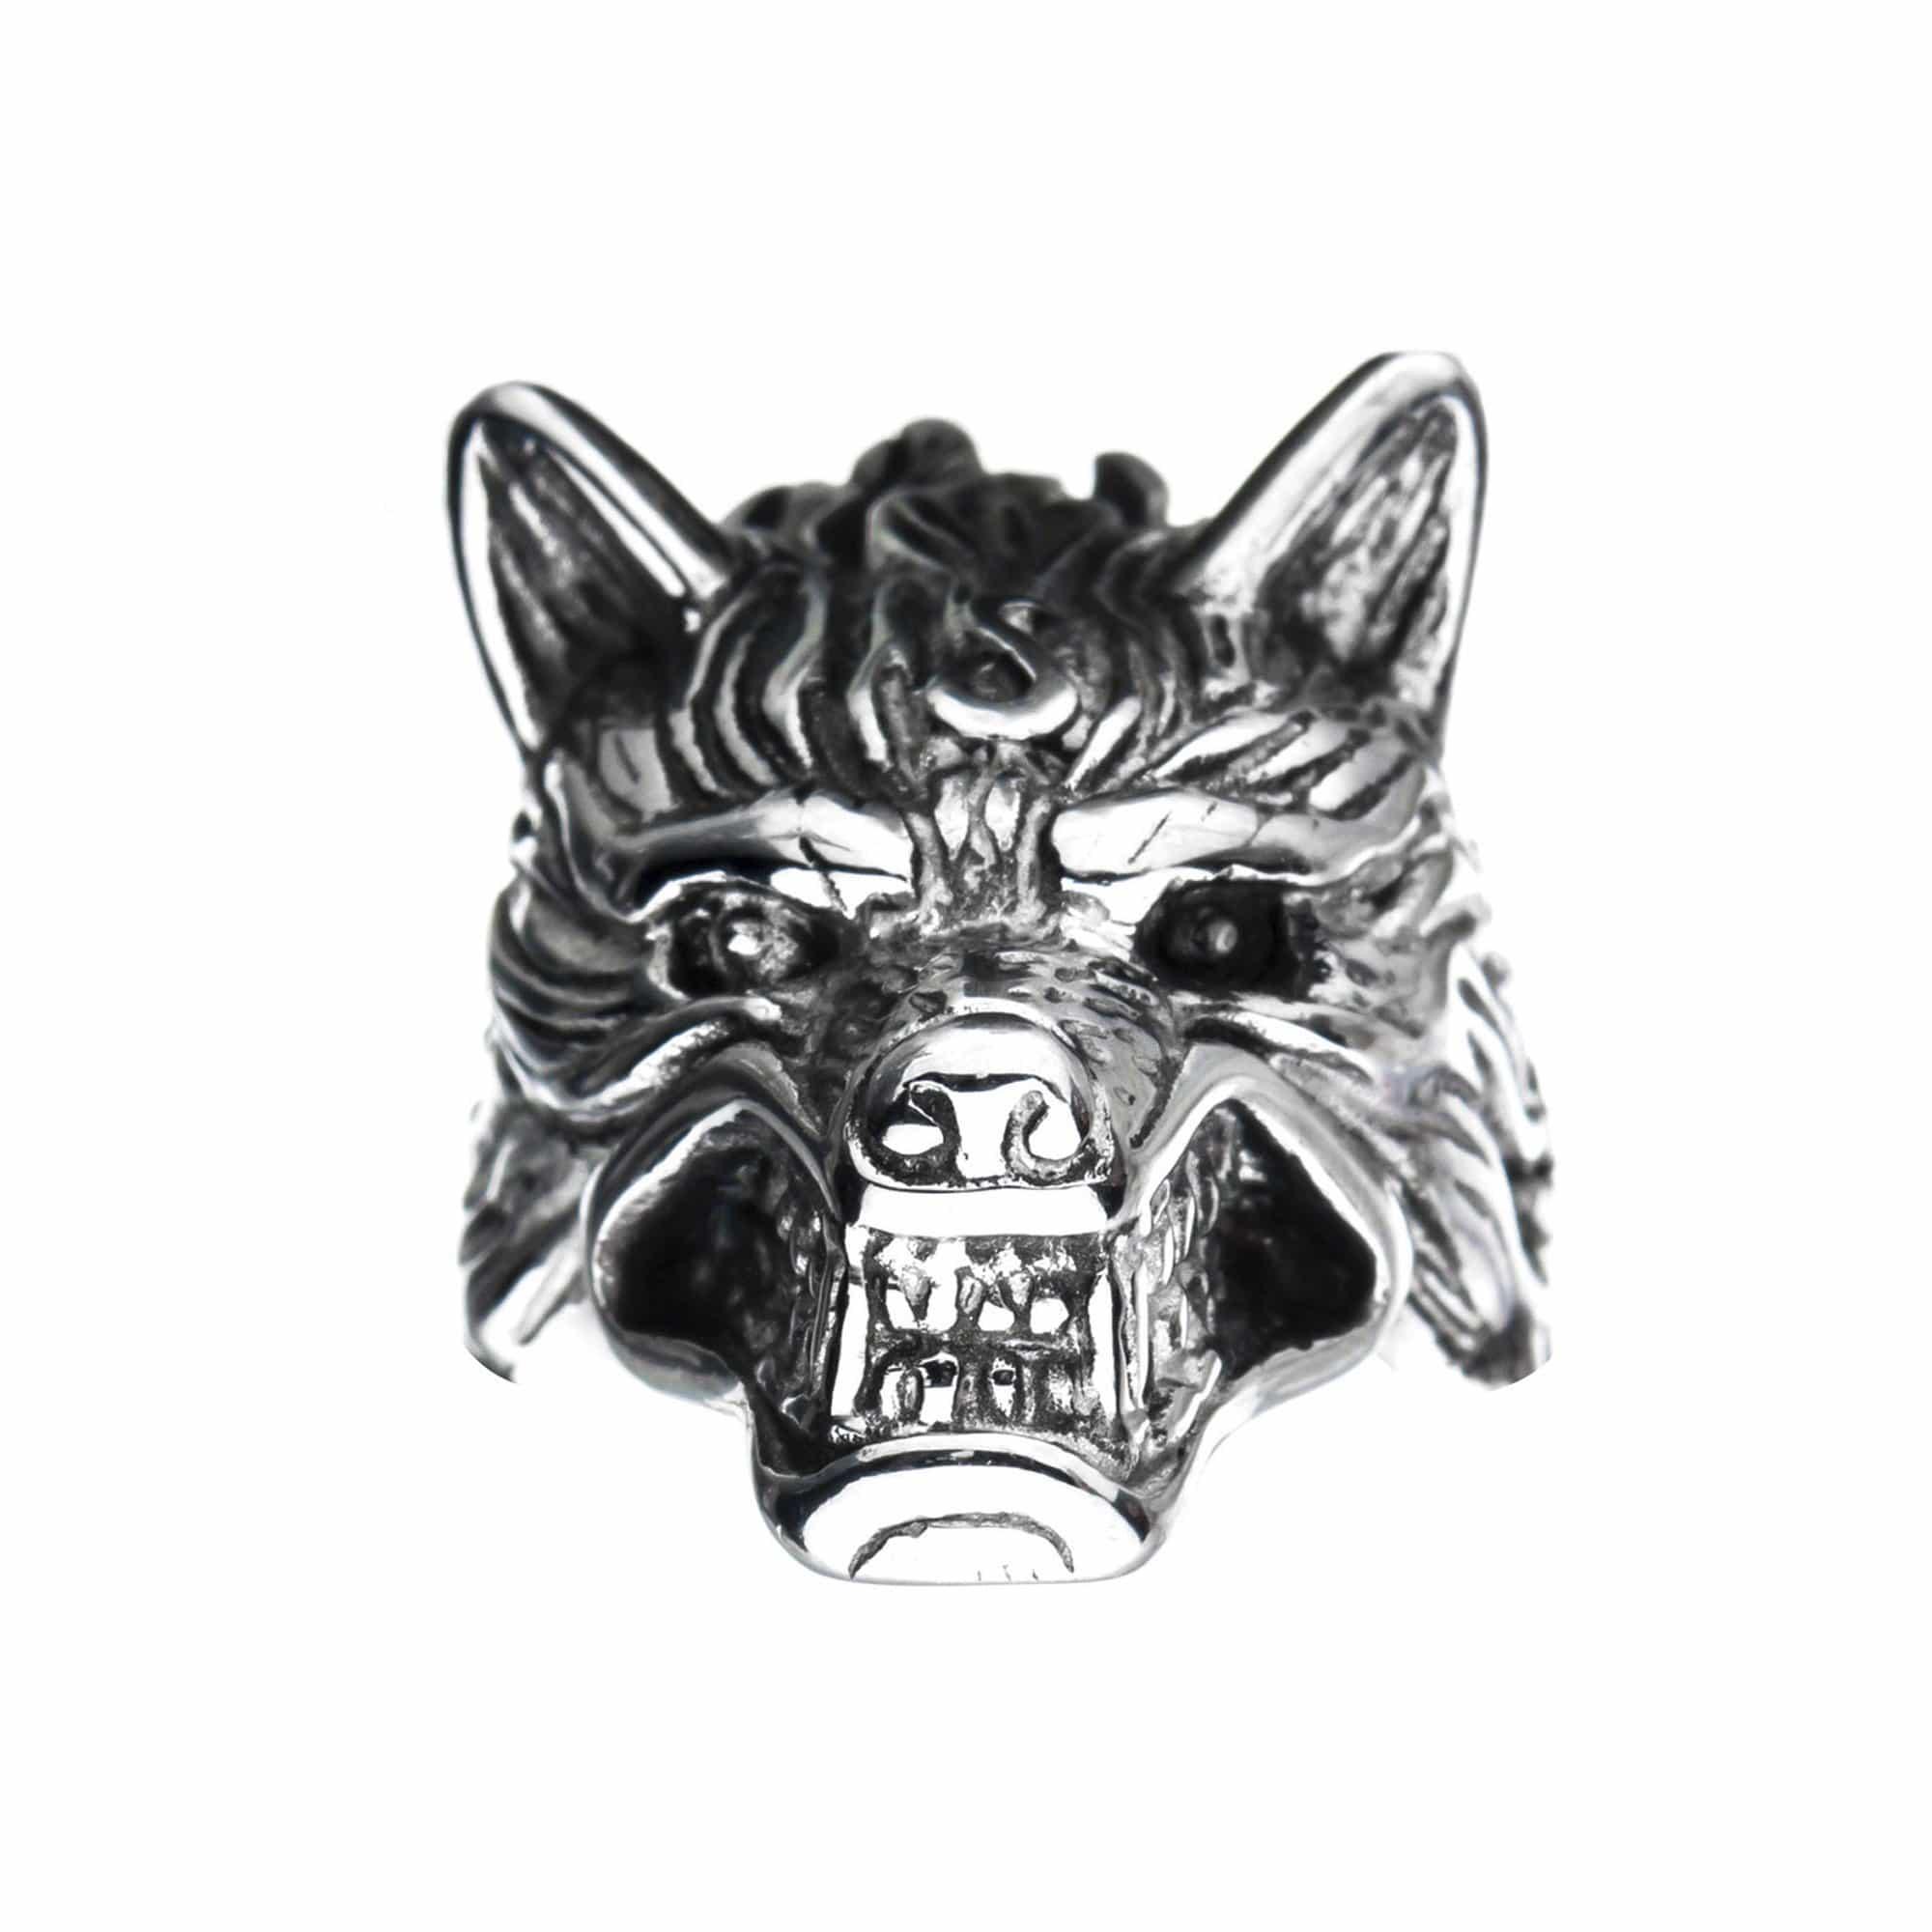 Silver Stainless Steel Angry Wolf Ring